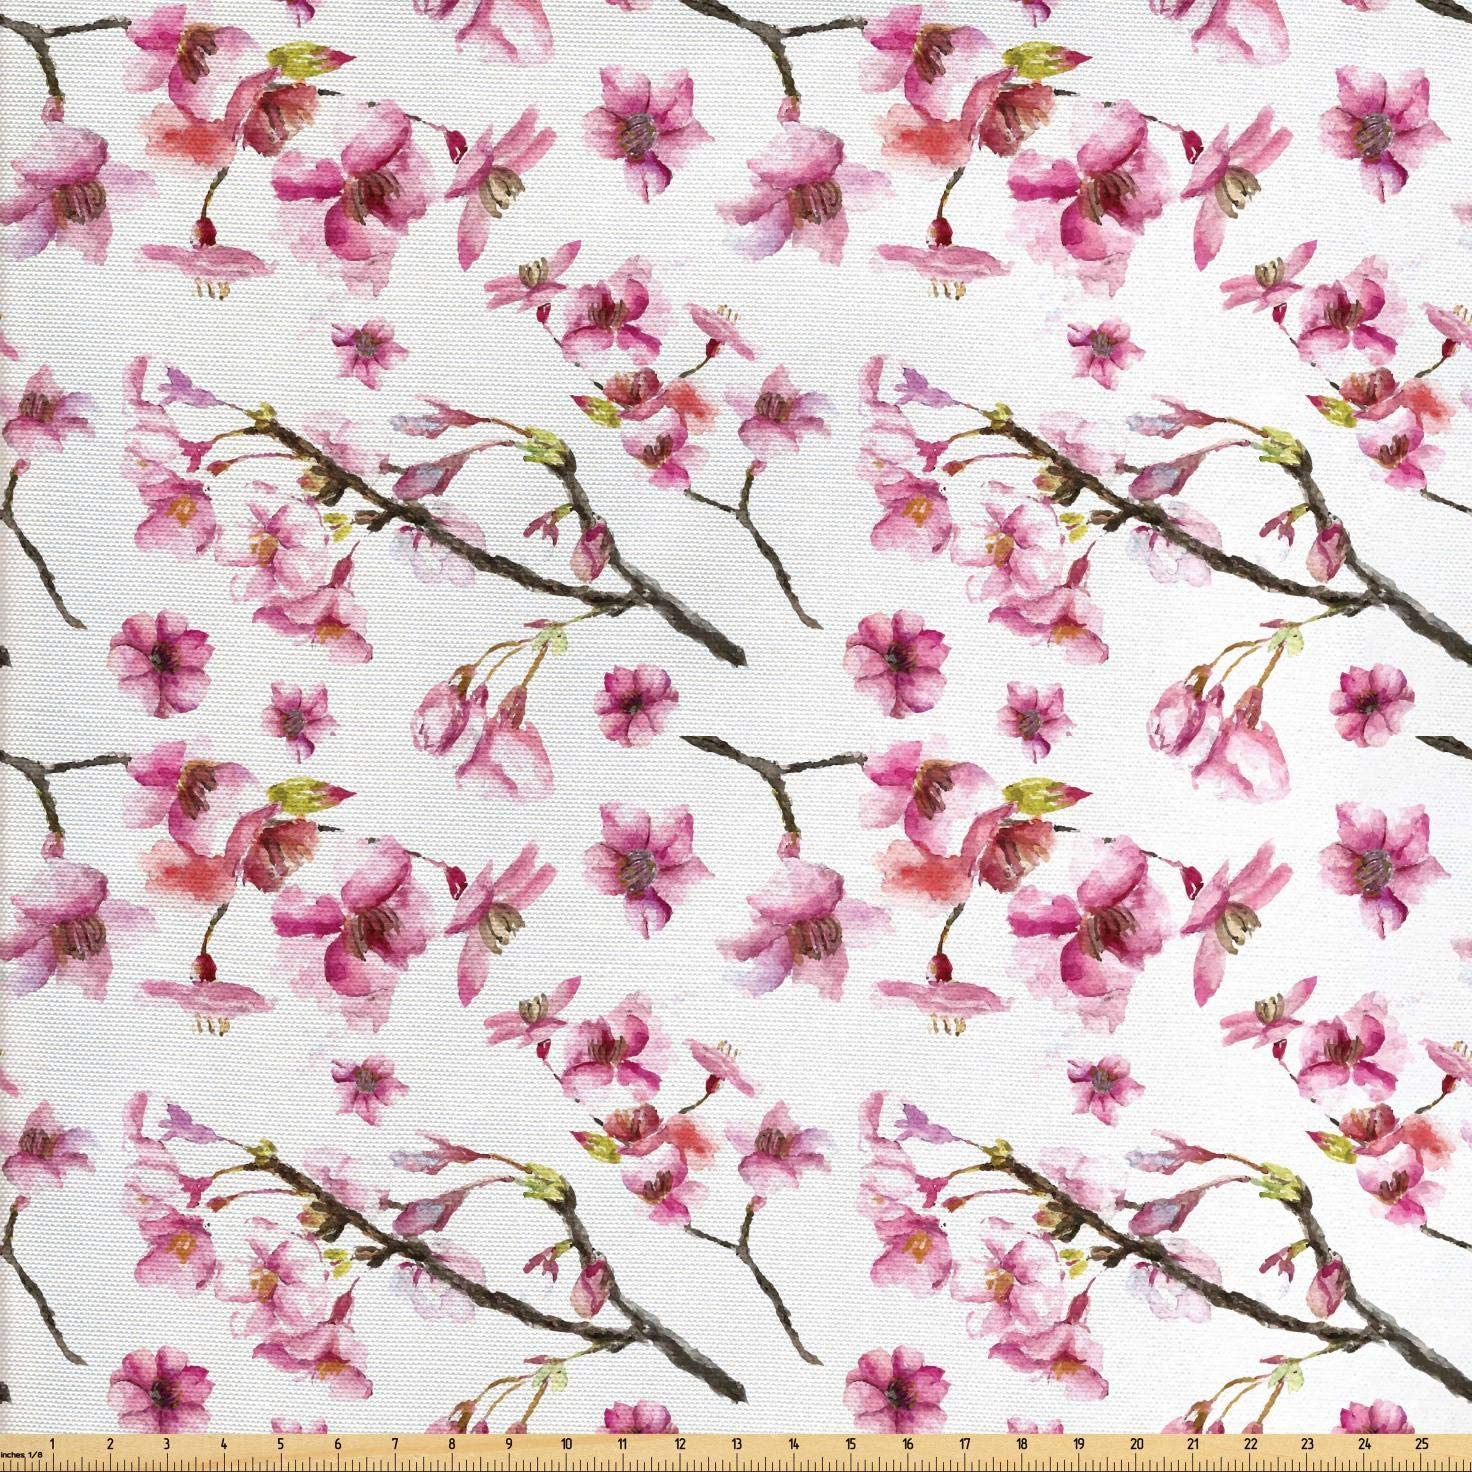 Ambesonne Cherry Blossom Fabric by The Yard, Watercolor Style Oriental Pattern with Sakura Branch, Decorative Fabric for Upholstery and Home Accents, 3 Yards, Green Brown